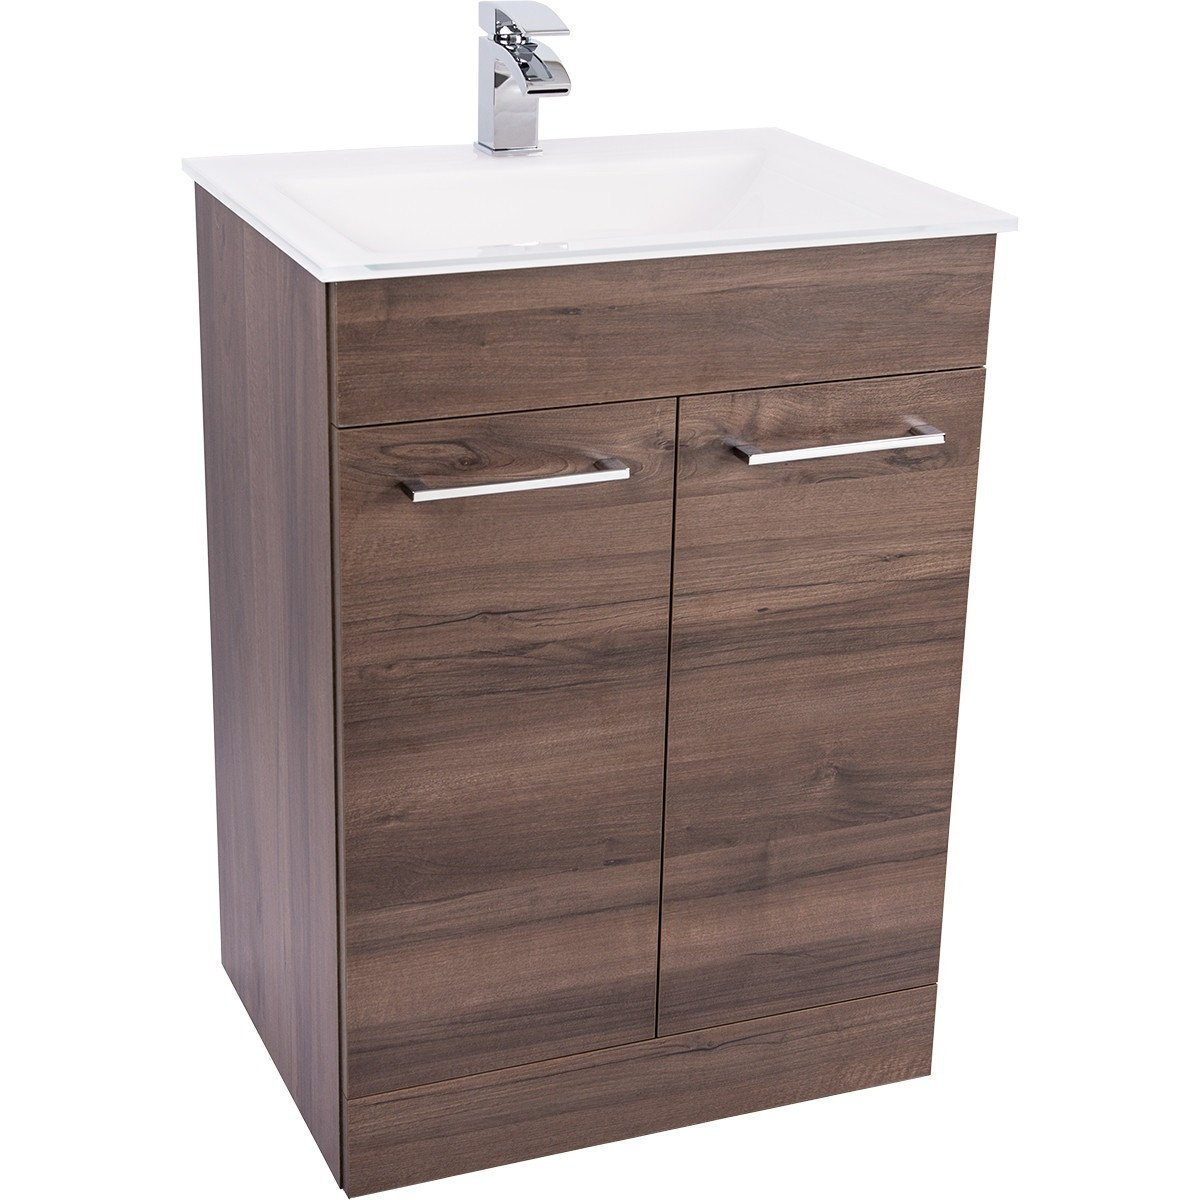 Venice White 600 Napoli Walnut 2 Door Unit & Basin